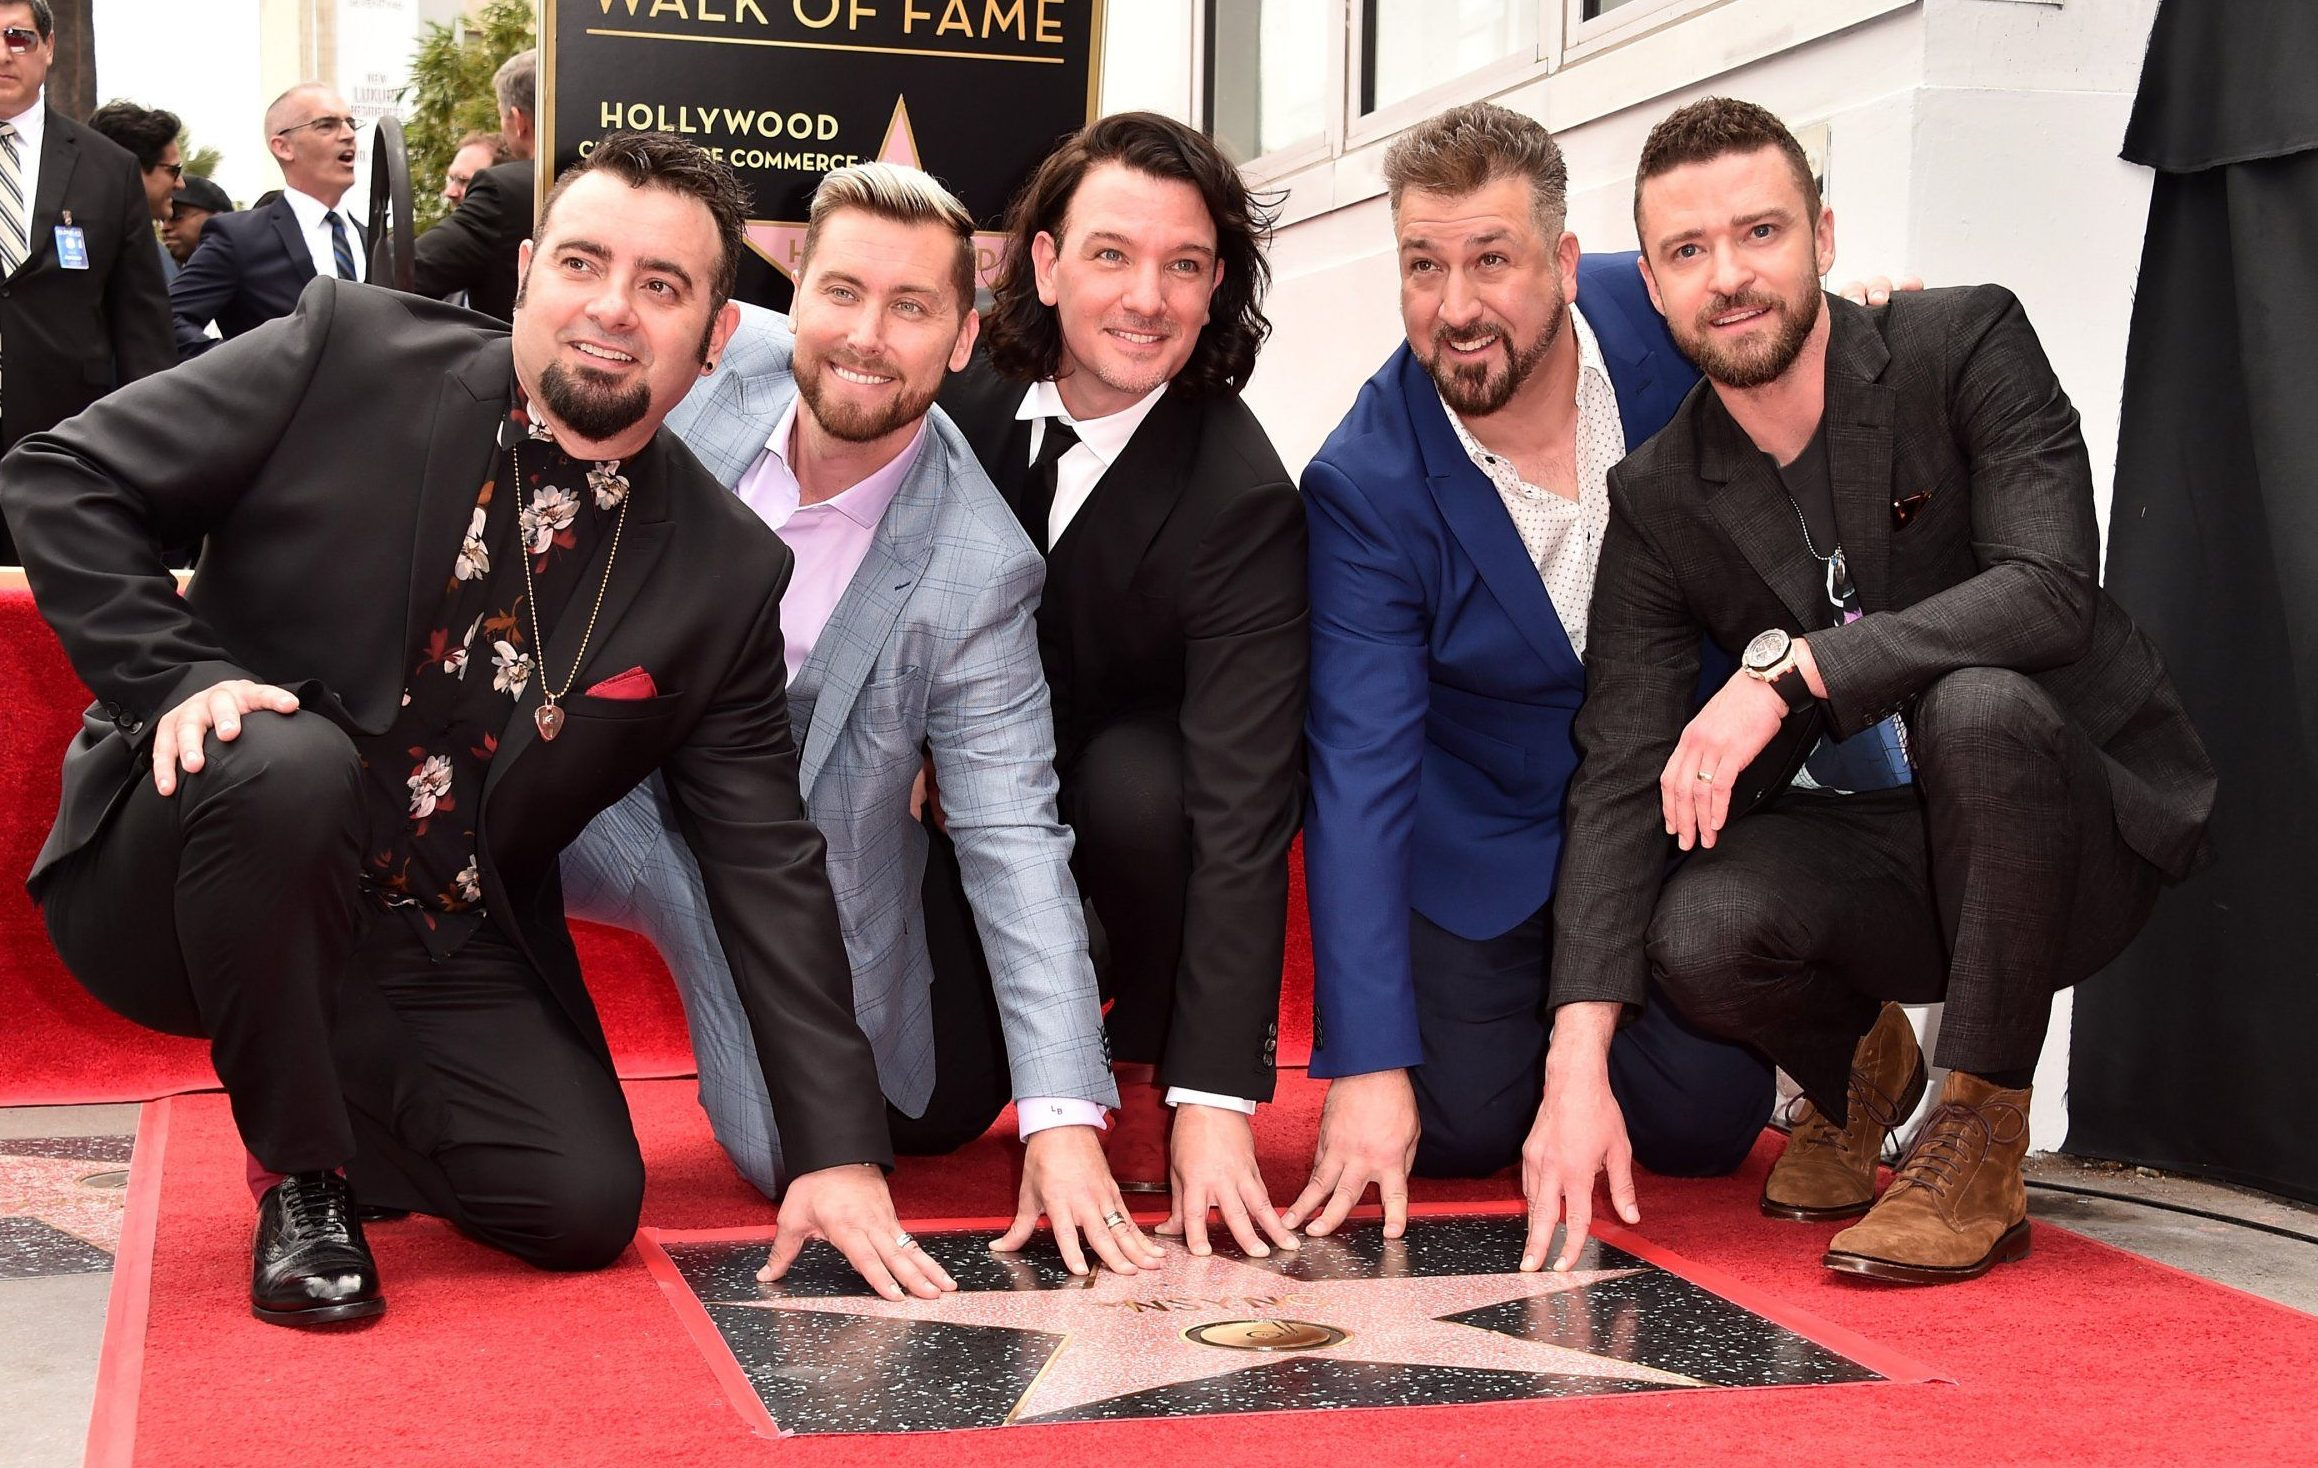 HOLLYWOOD, CA - APRIL 30: Singers Chris Kirkpatrick, Lance Bass, JC Chasez, Joey Fatone and Justin Timberlake of NSYNC are honored with a star on the Hollywood Walk of Fame on April 30, 2018 in Hollywood, California. (Photo by Alberto E. Rodriguez/Getty Images)